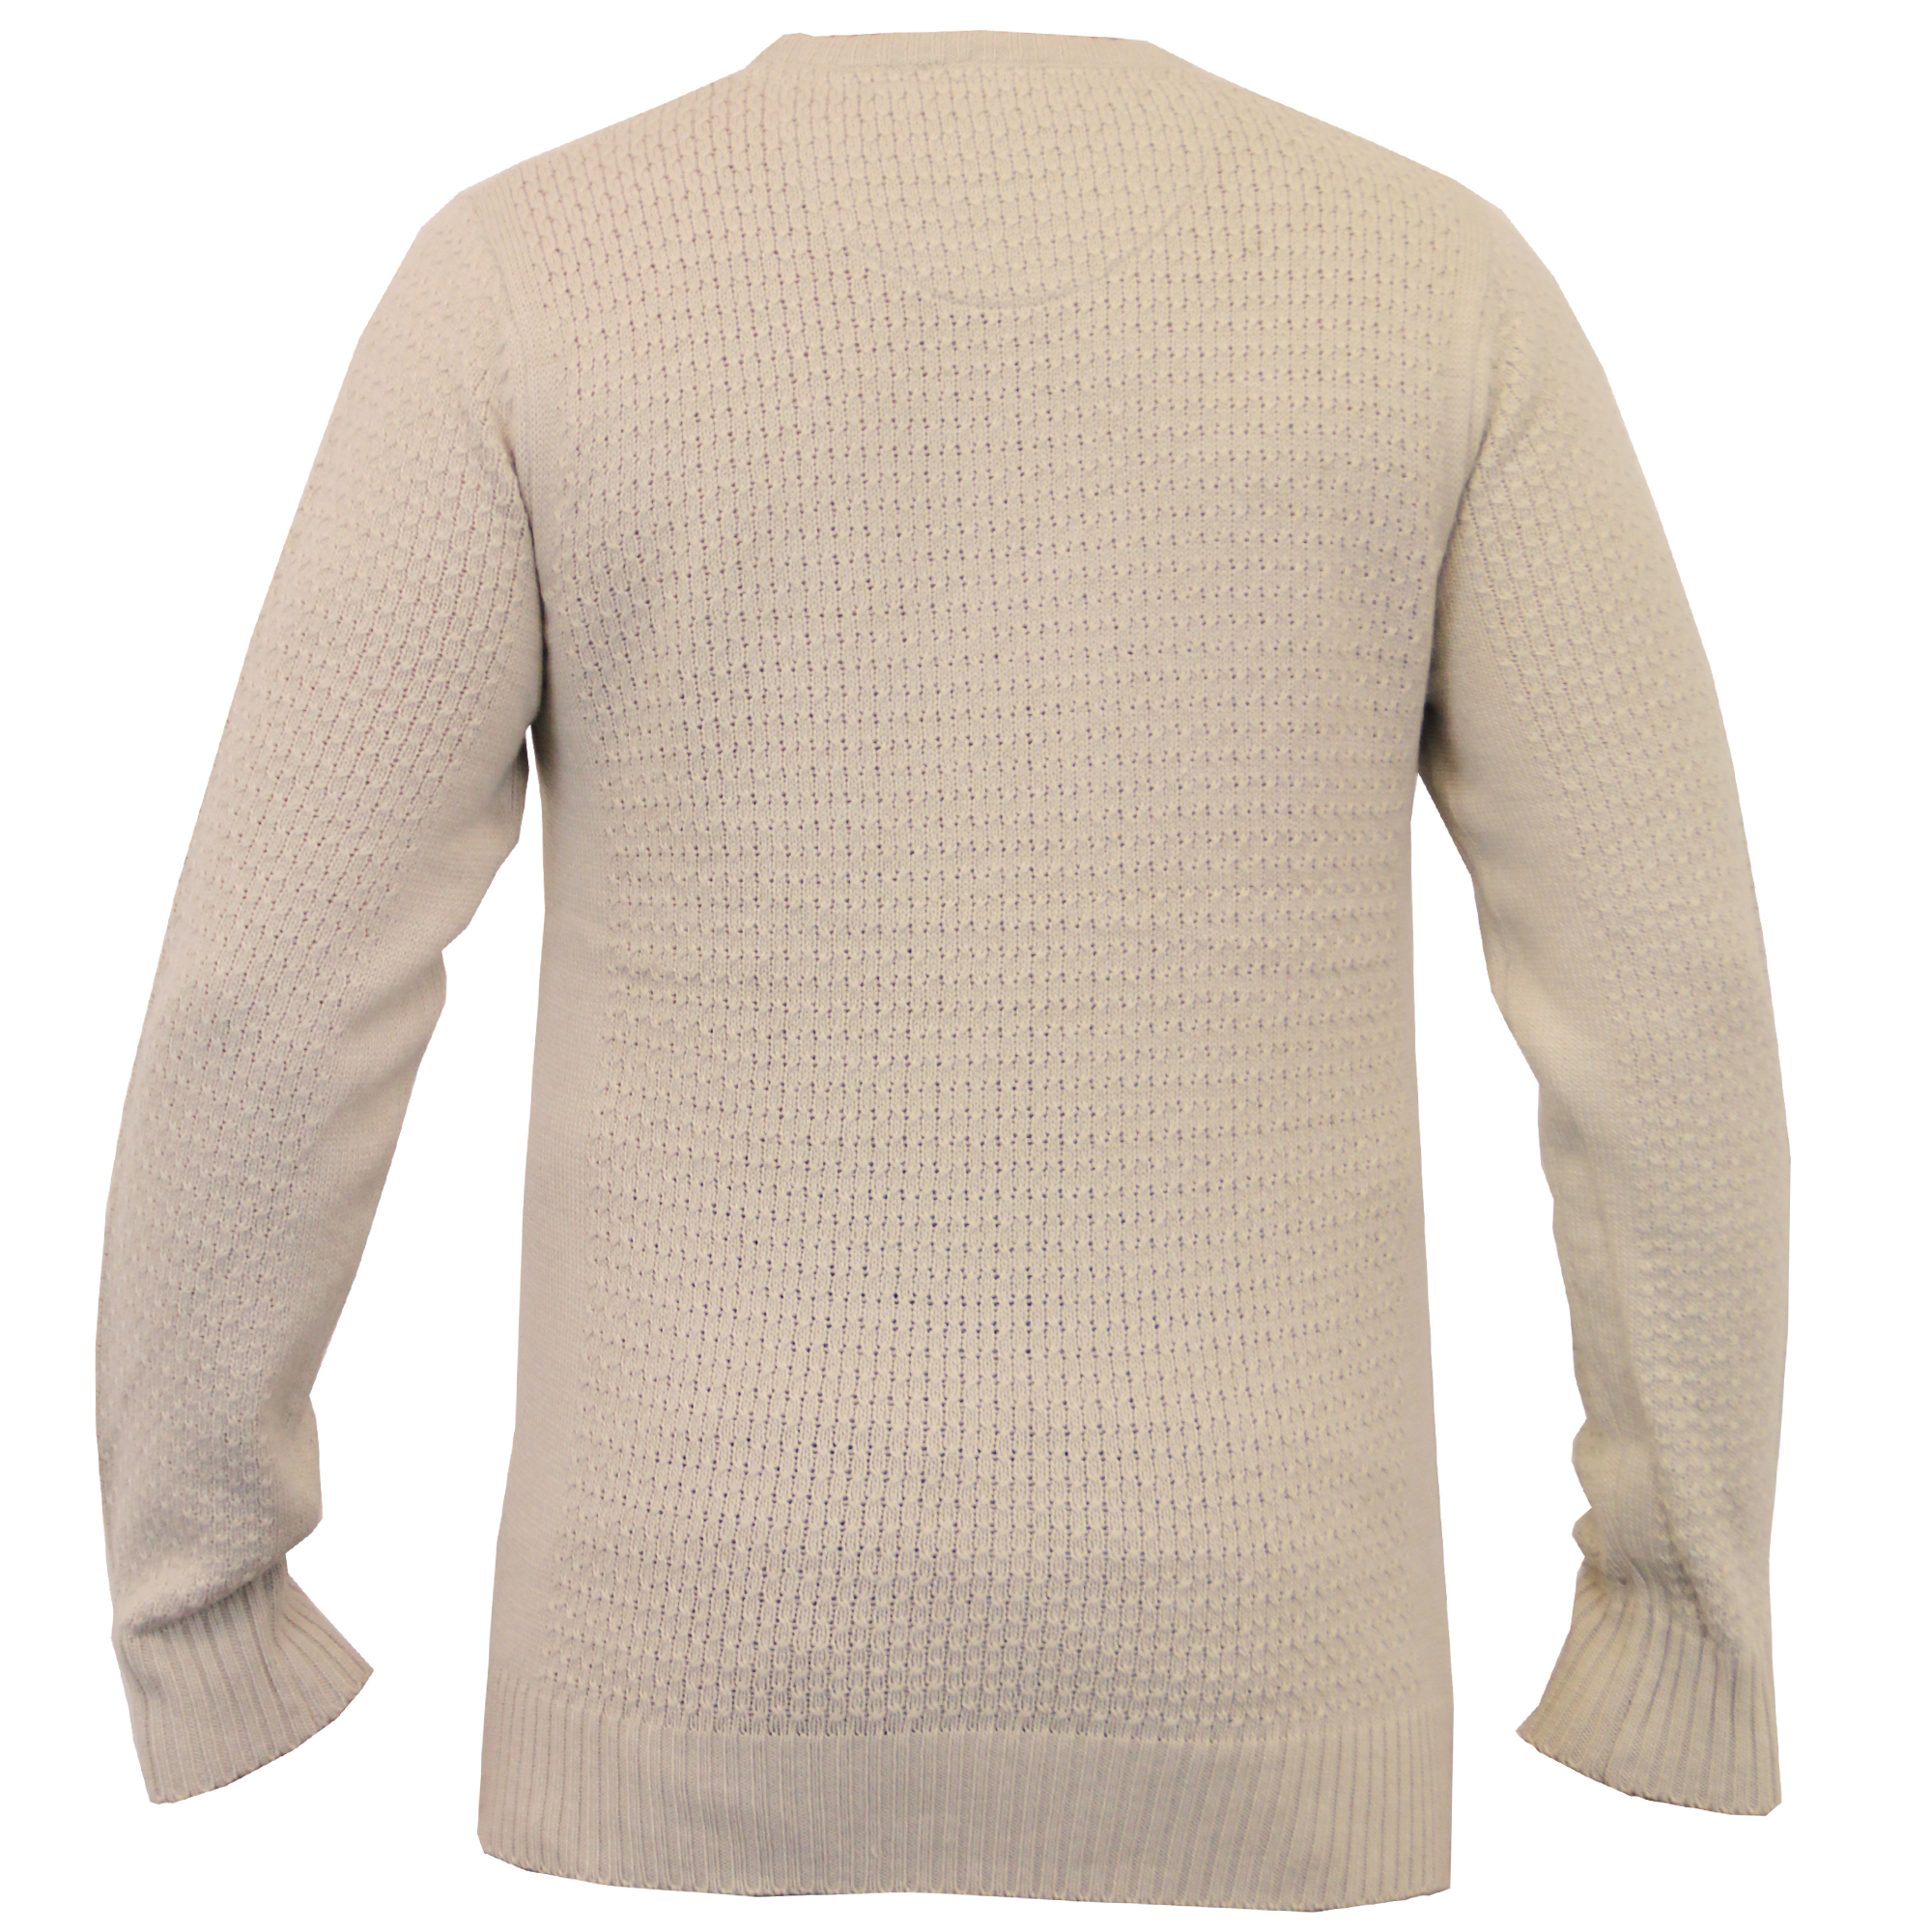 Mens-Knitted-Sweater-Pullover-Jumpers-By-Brave-Soul thumbnail 9